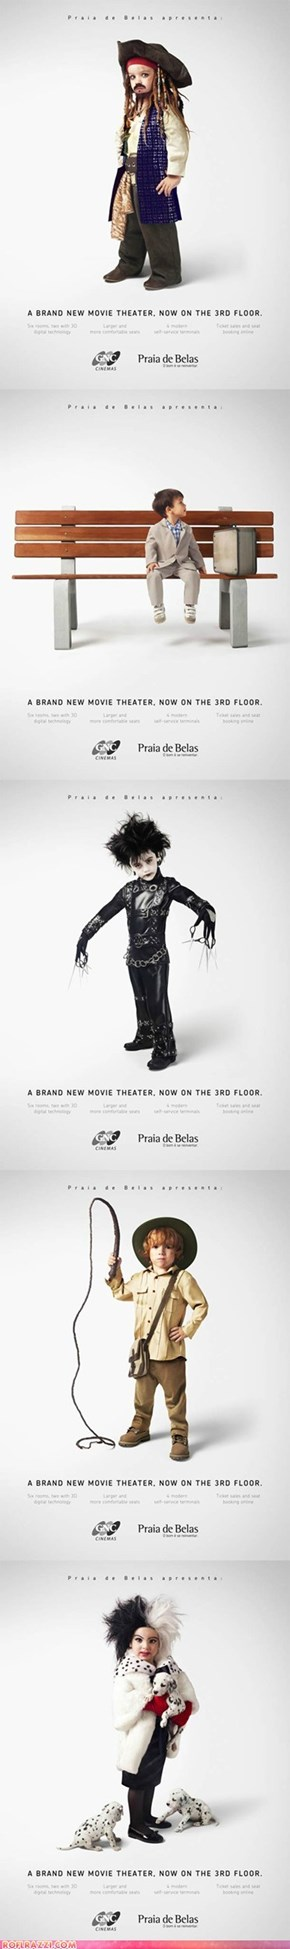 Children as Famous Film Characters